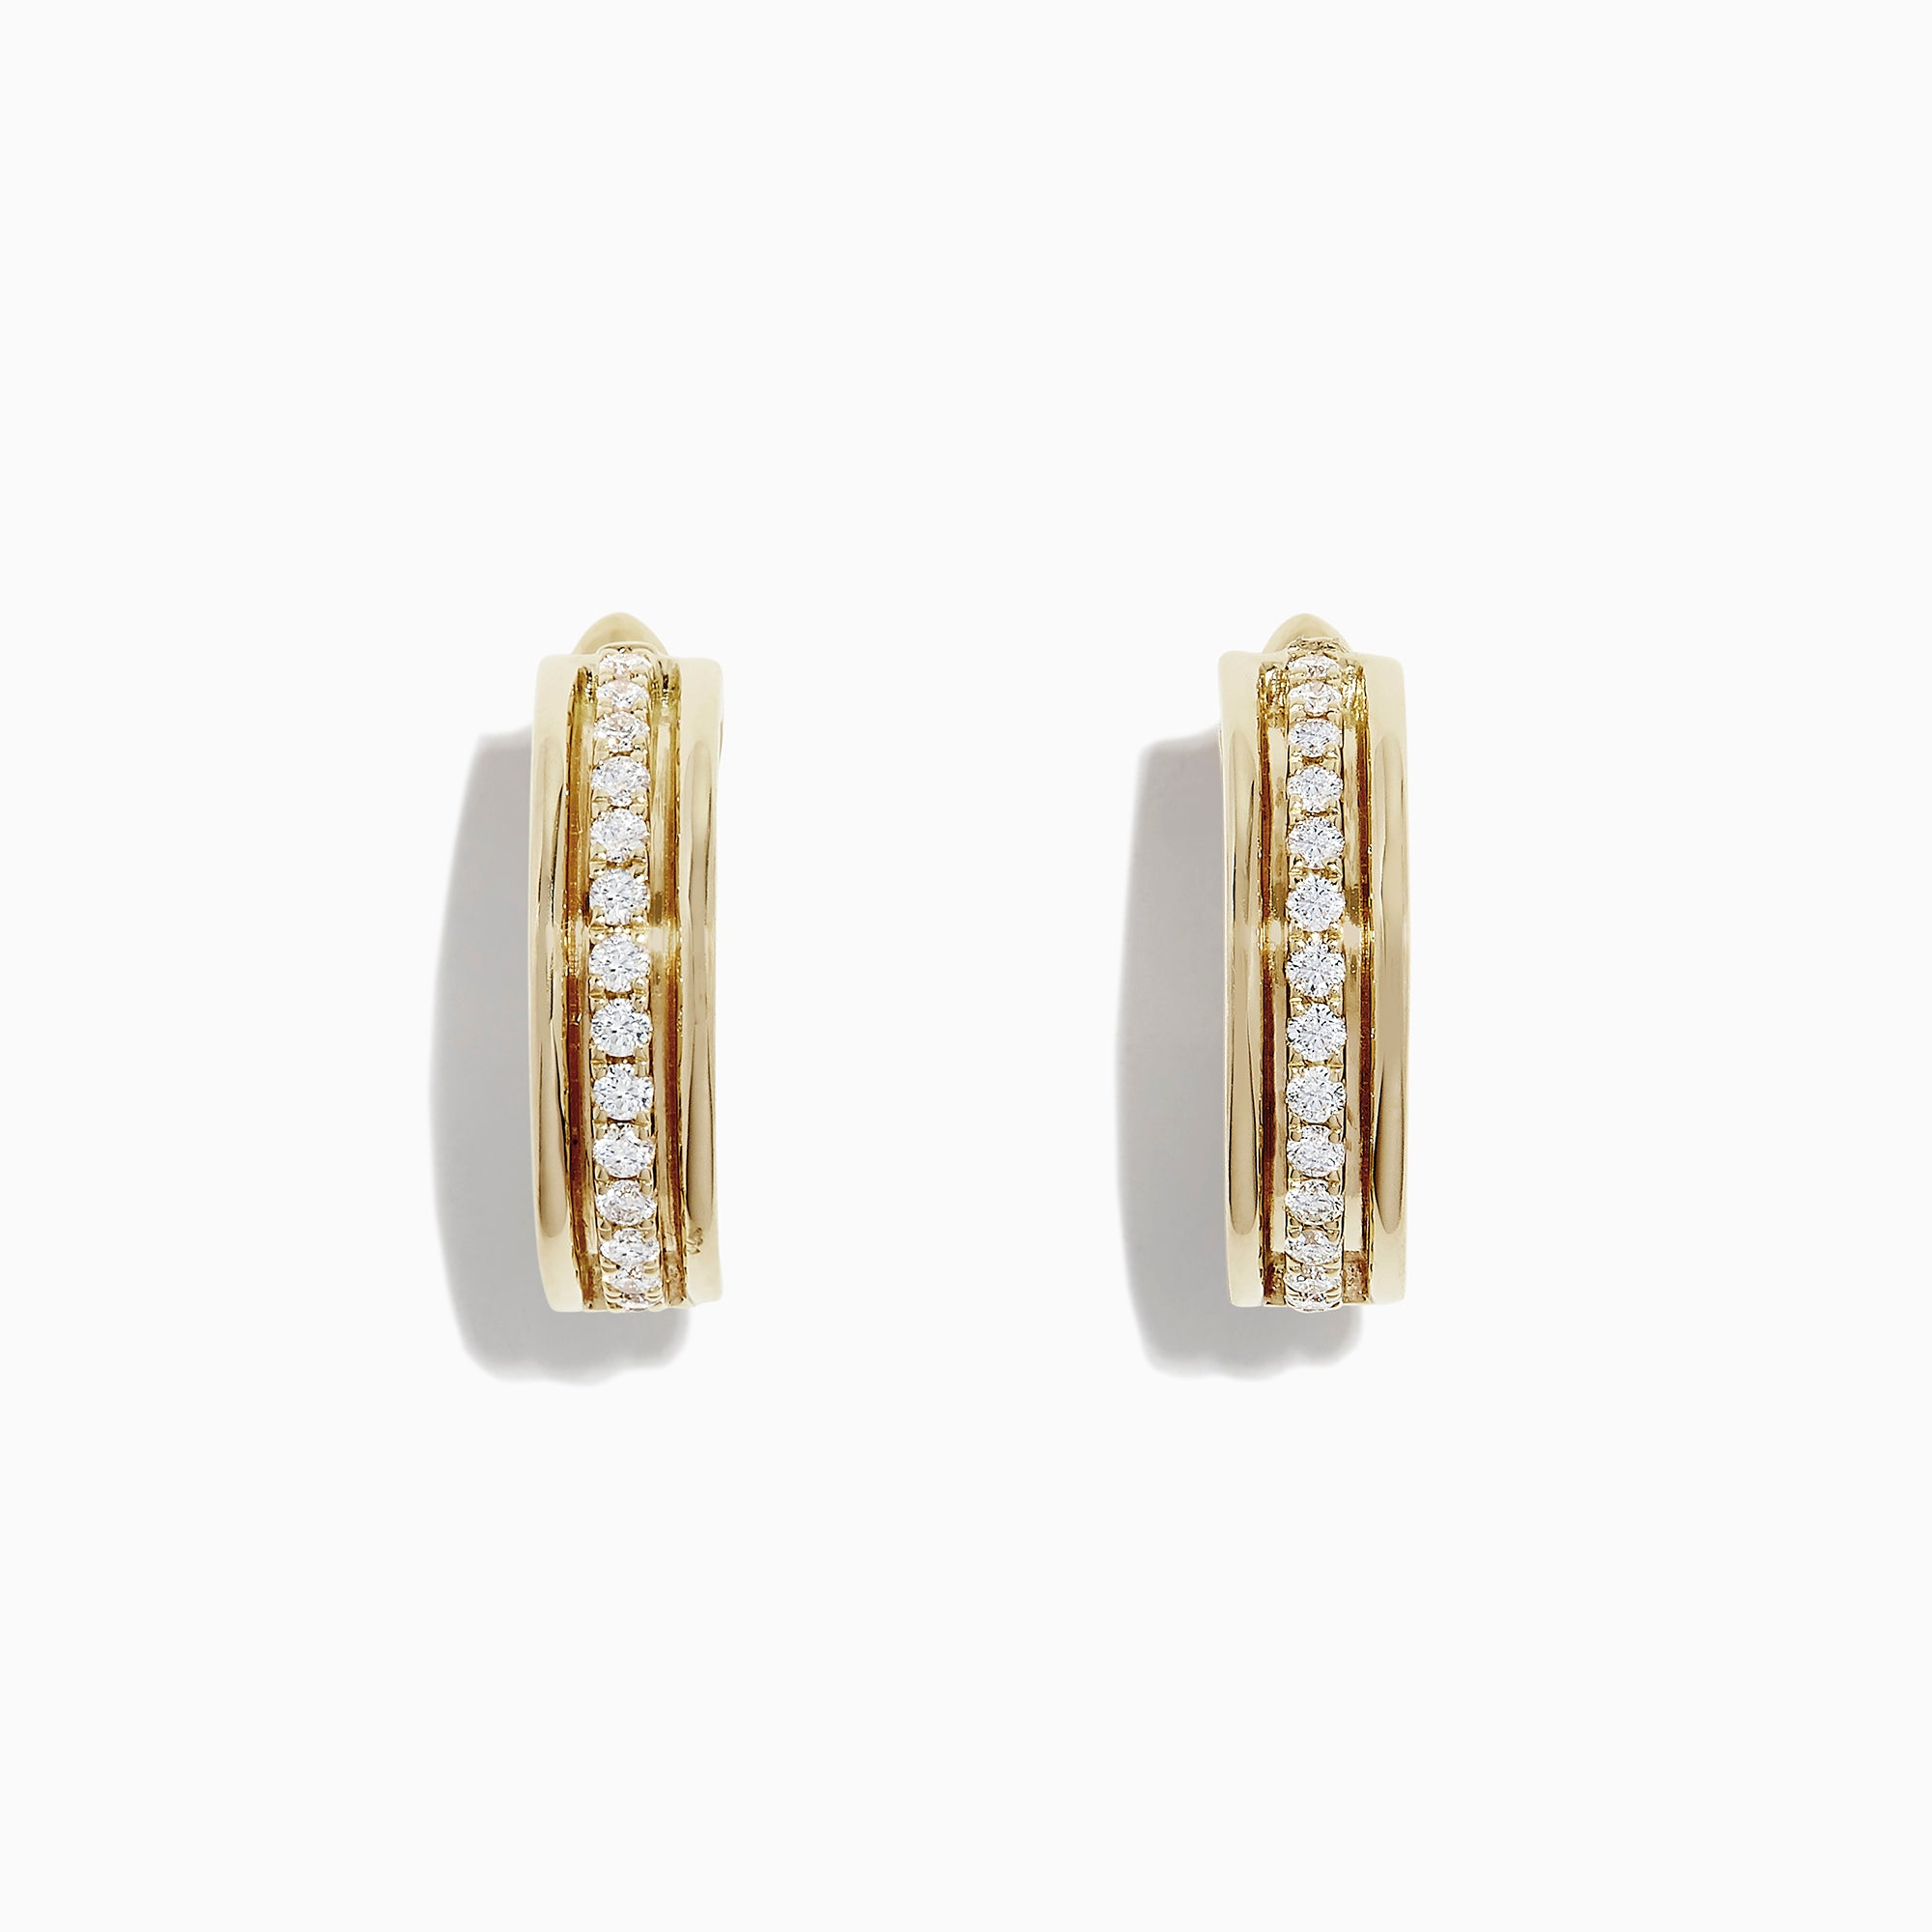 Effy D'Oro 14K Yellow Gold Diamond Huggie-Hoop Earrings, 0.34 TCW